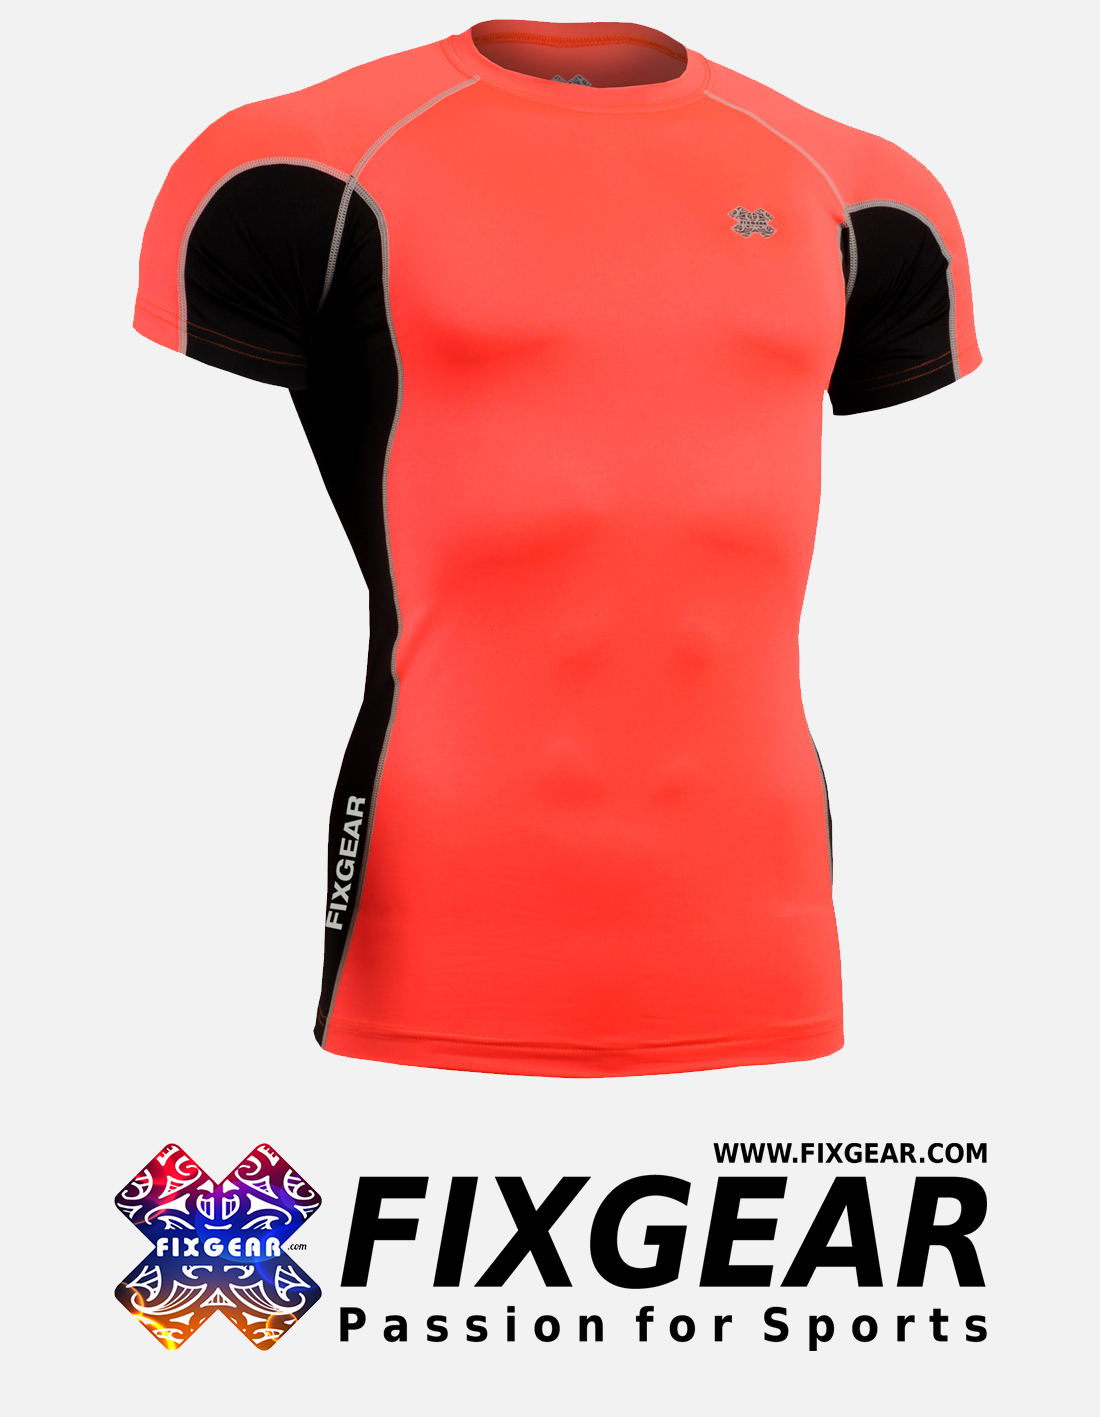 FIXGEAR FCTR-BPS Skin-tight Compression Base Layer Shirt